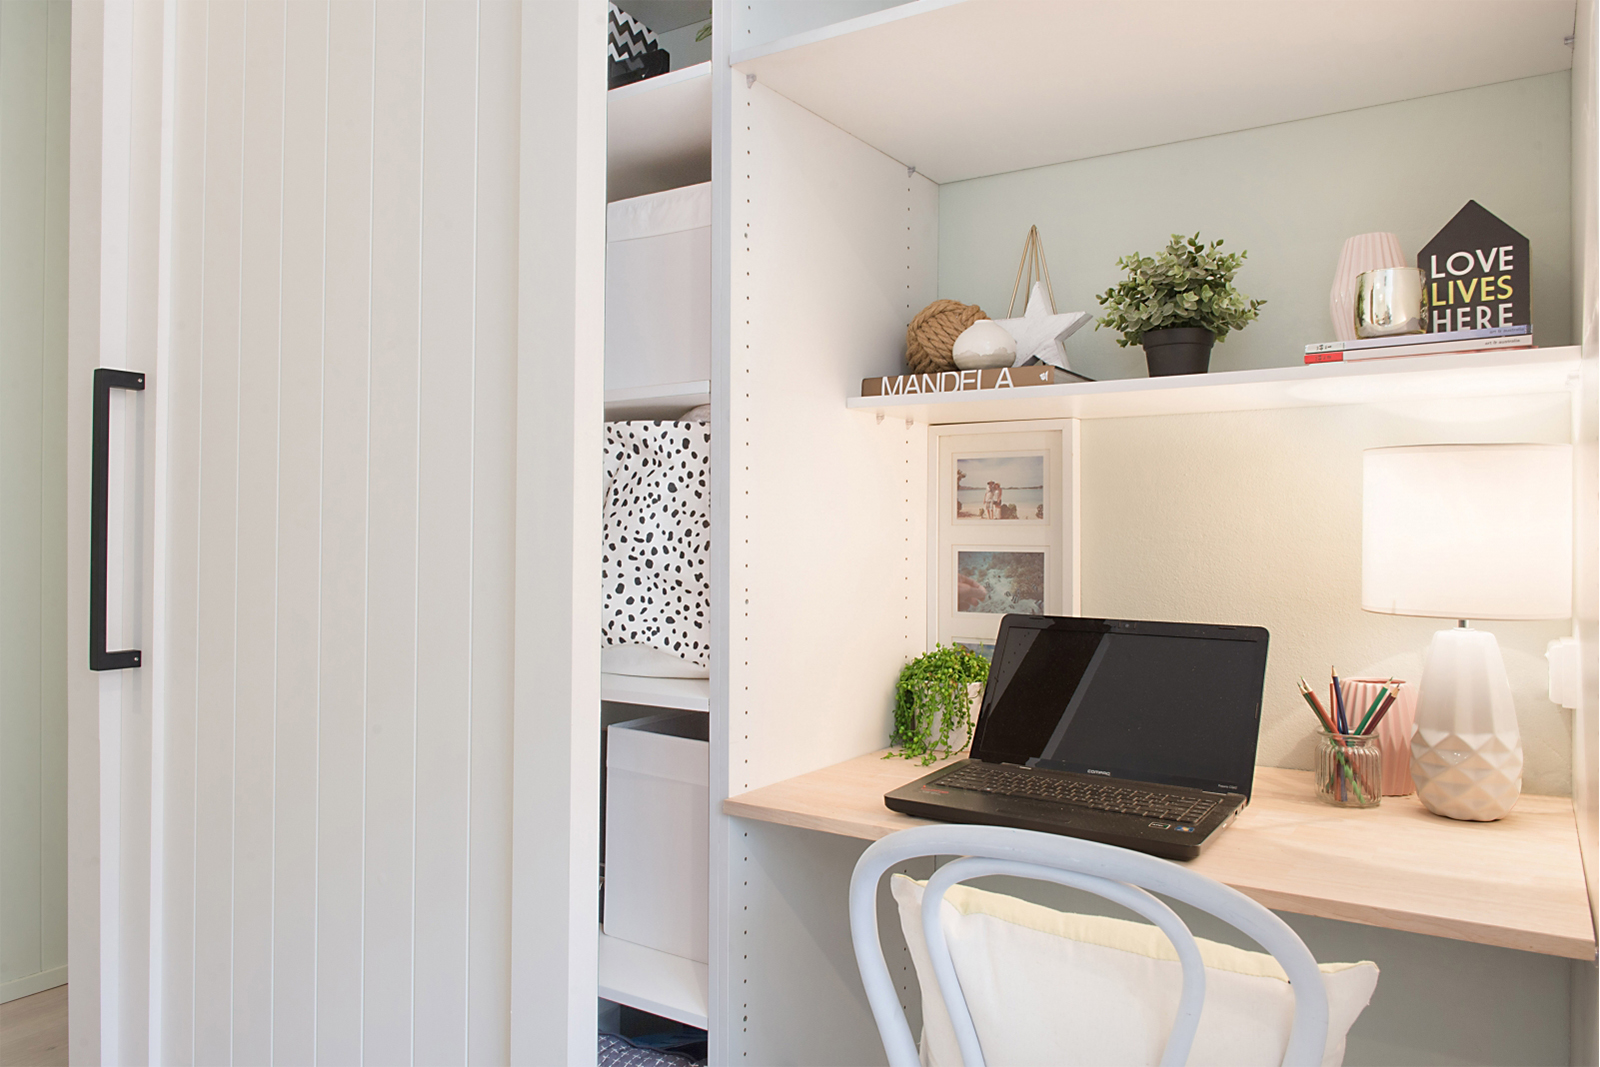 Cherie-Barber-storage-image-solo-3-for-Mortdale-Apartment-blog